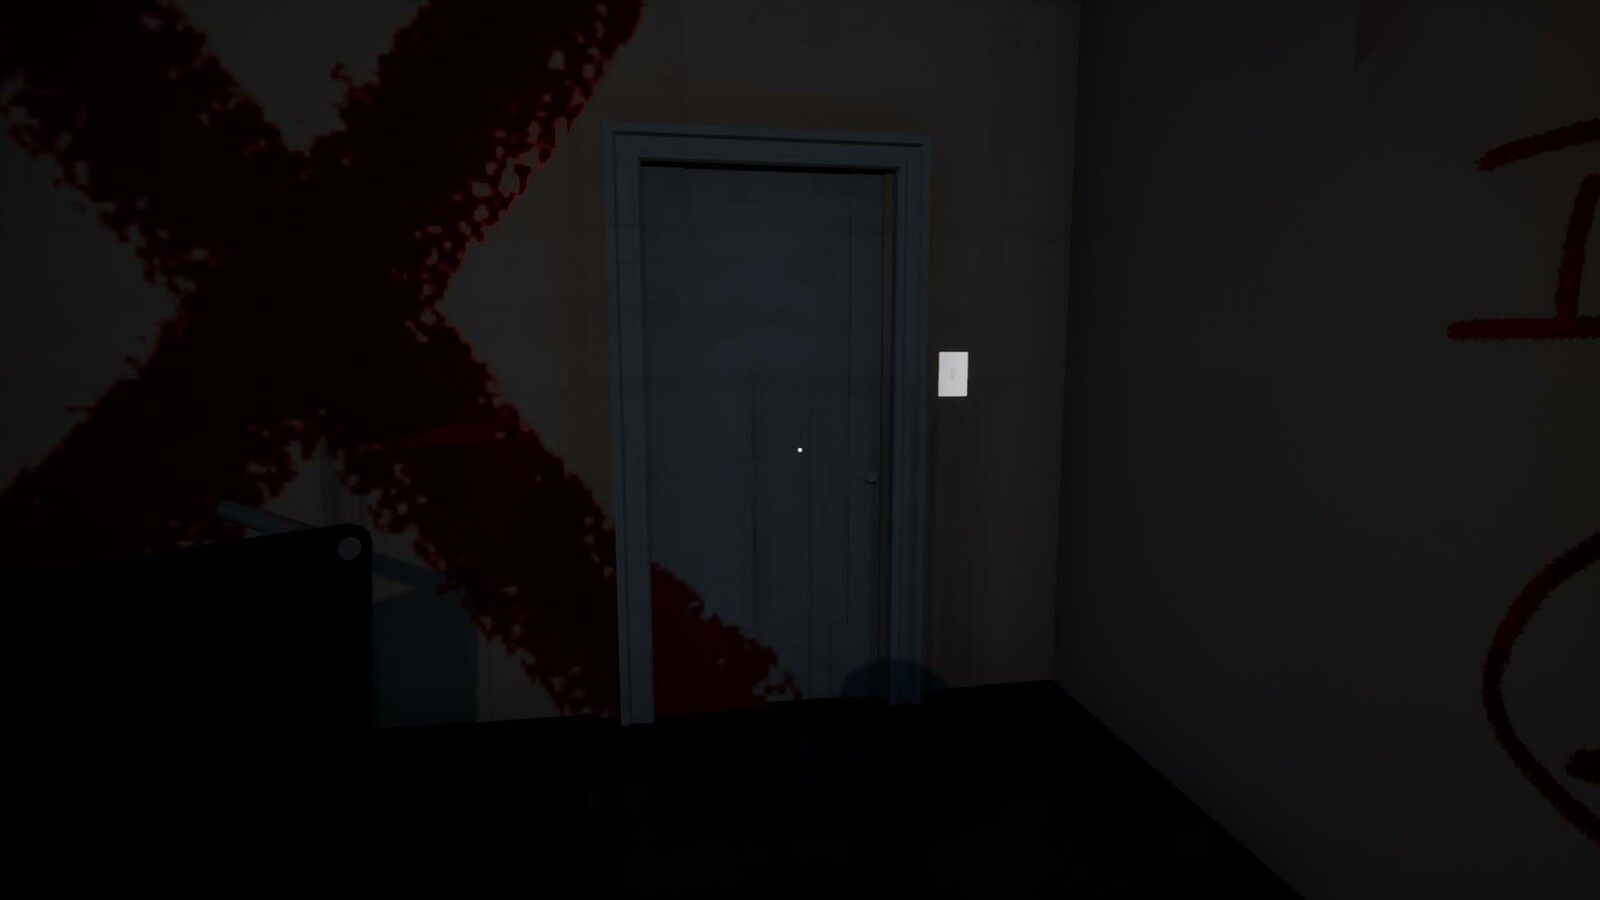 when the player leaves the hallway, the door slams behind them and locks